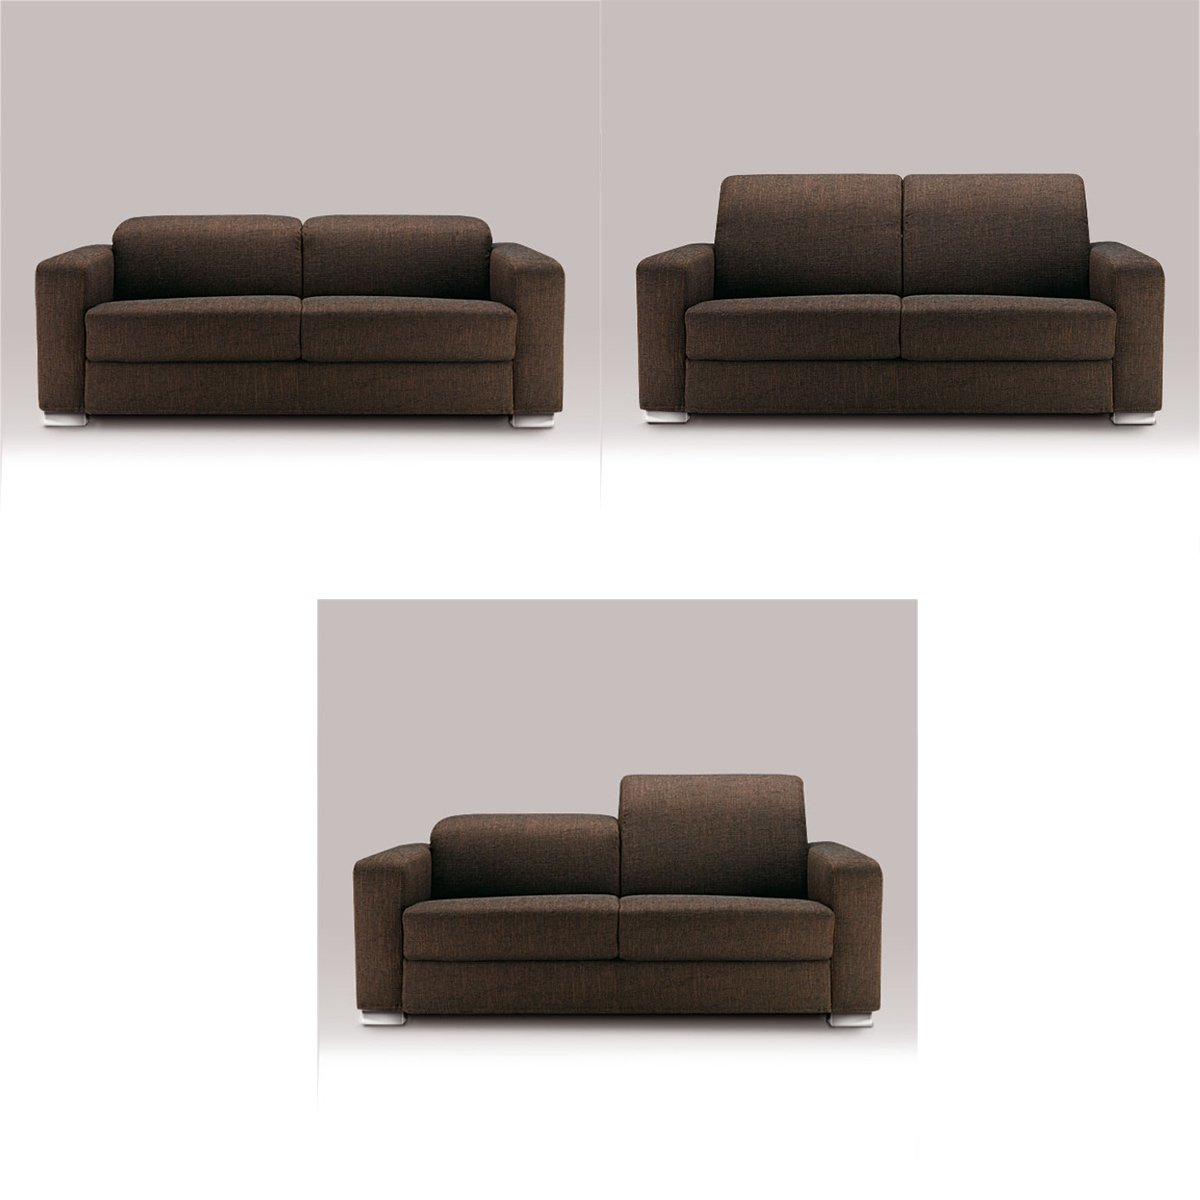 canap convertible couchage quotidien ajaccio meubles et atmosph re. Black Bedroom Furniture Sets. Home Design Ideas